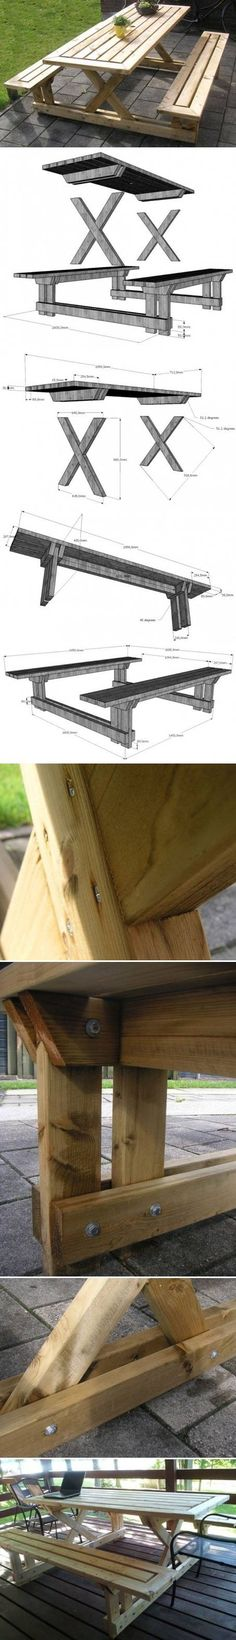 DIY Garden Bench and Table